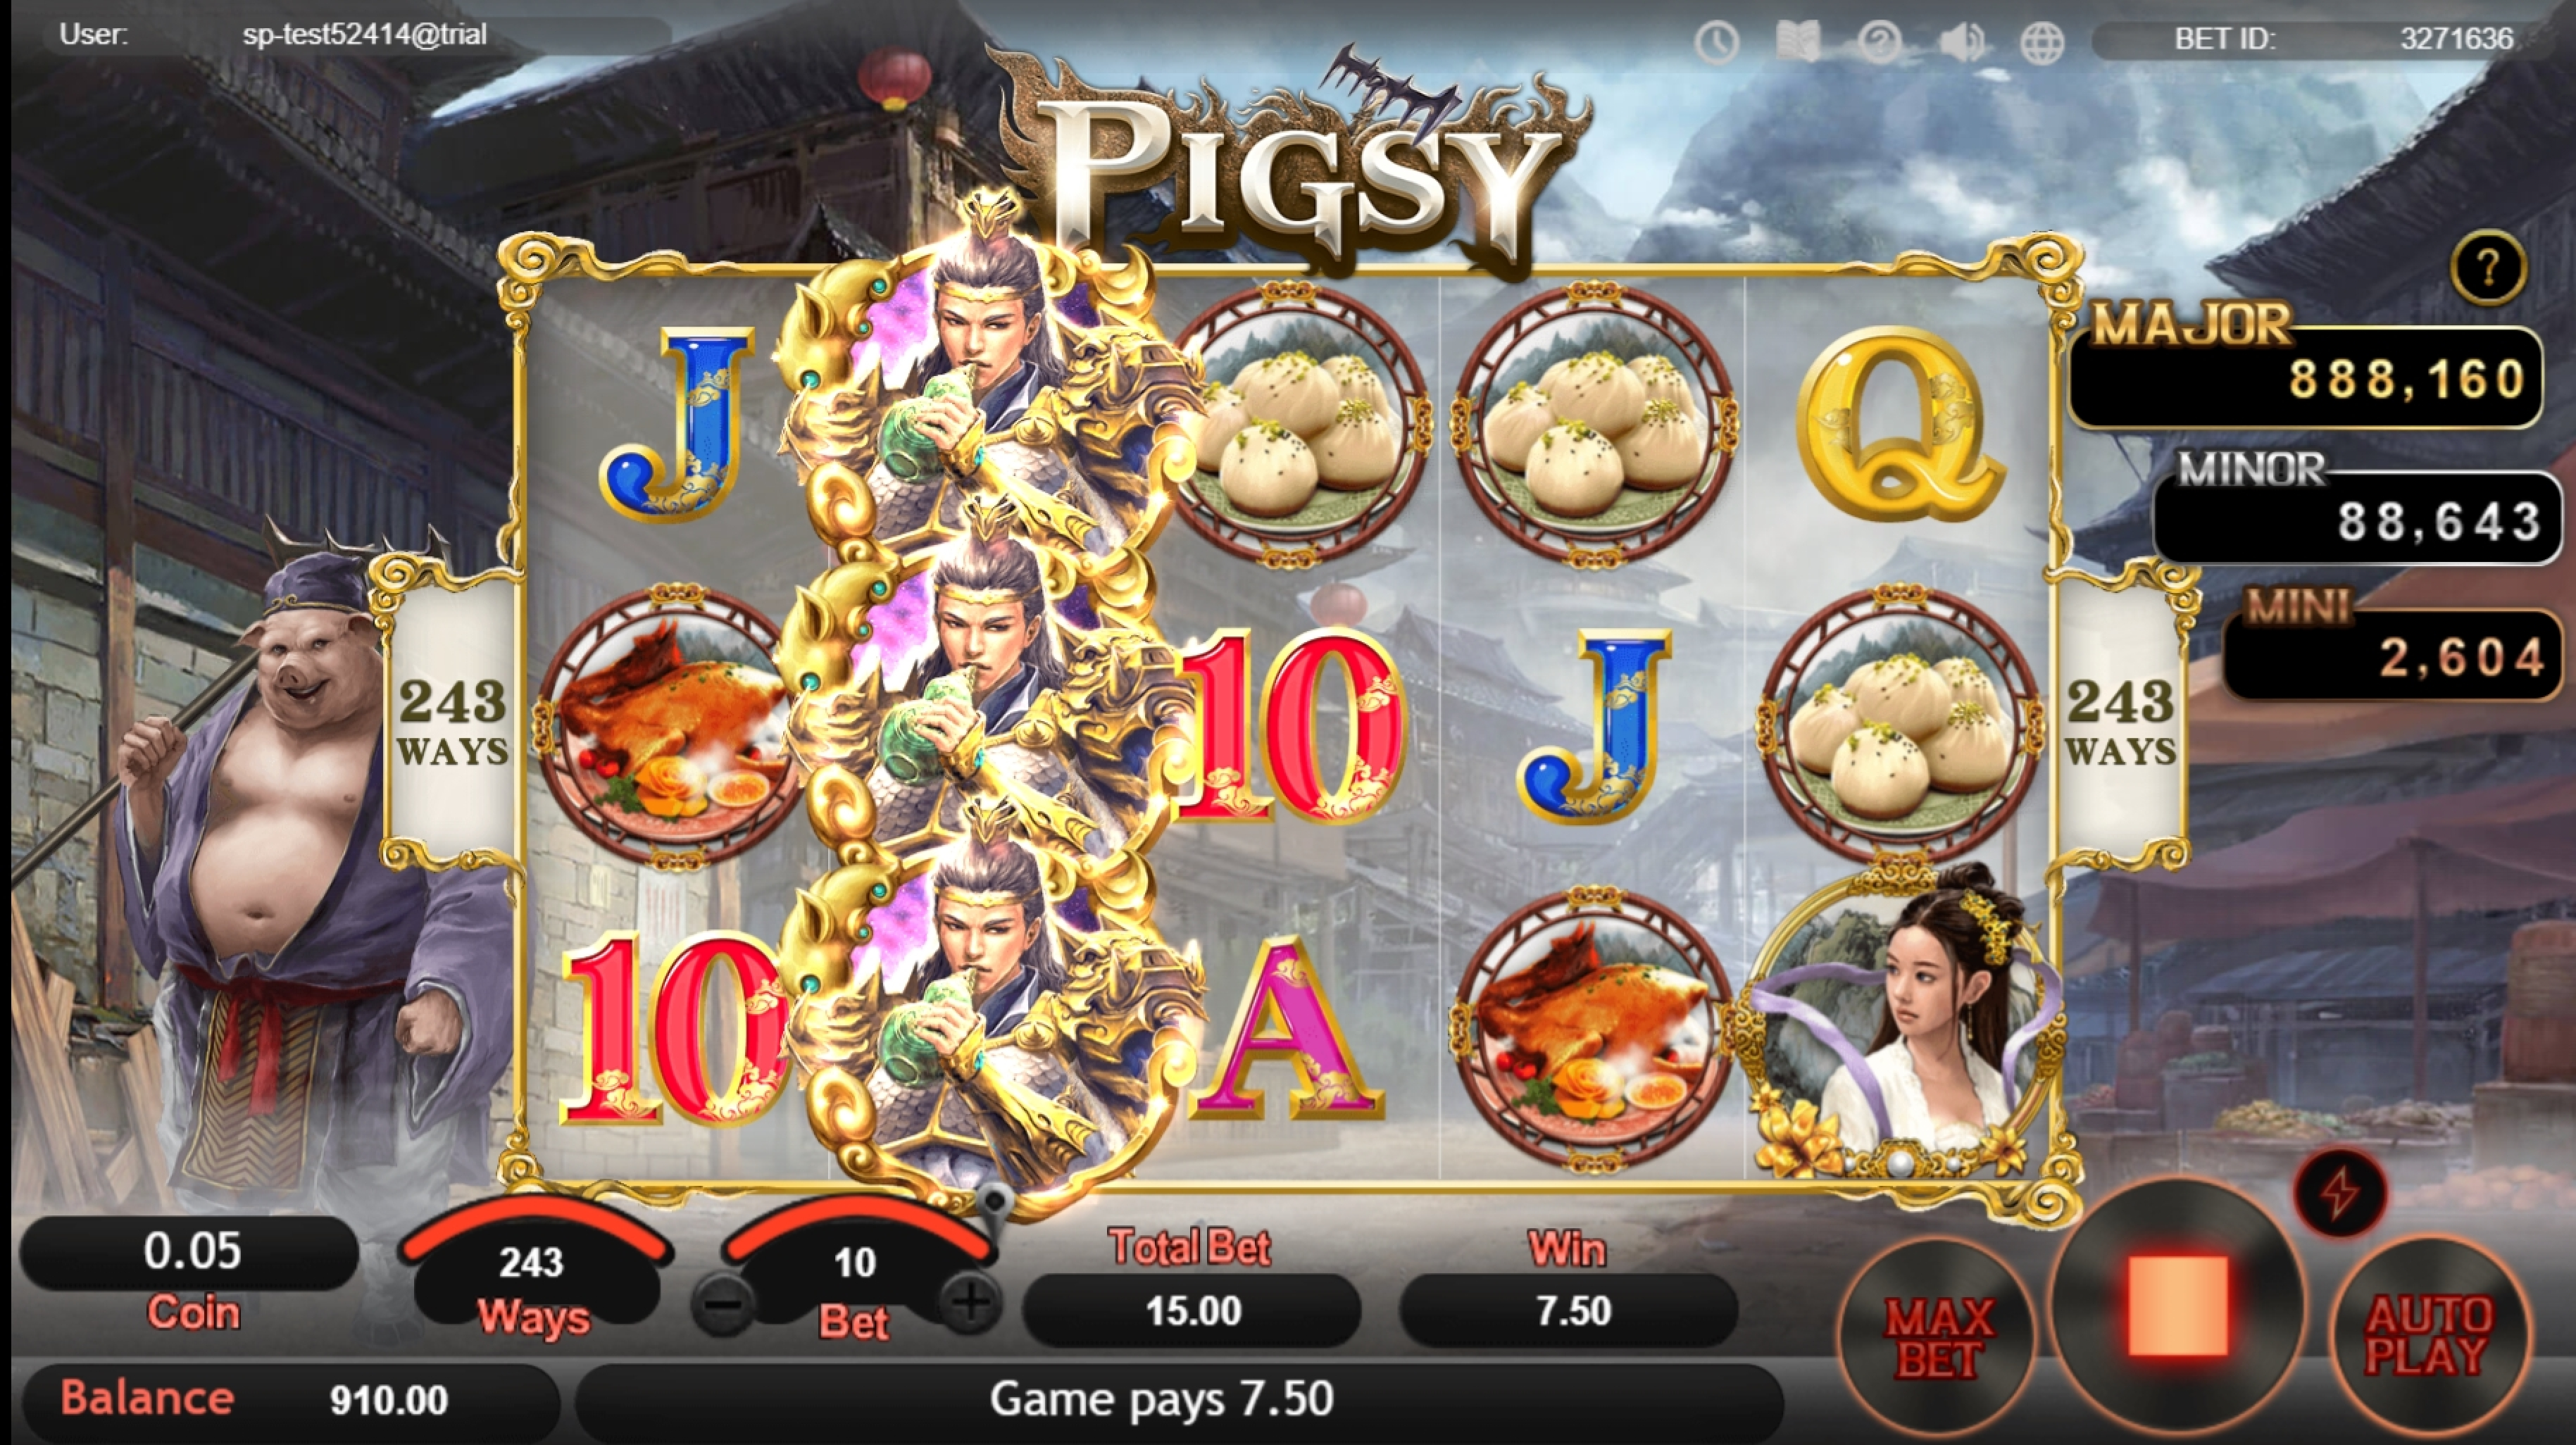 Win Money in Pigsy Free Slot Game by SimplePlay